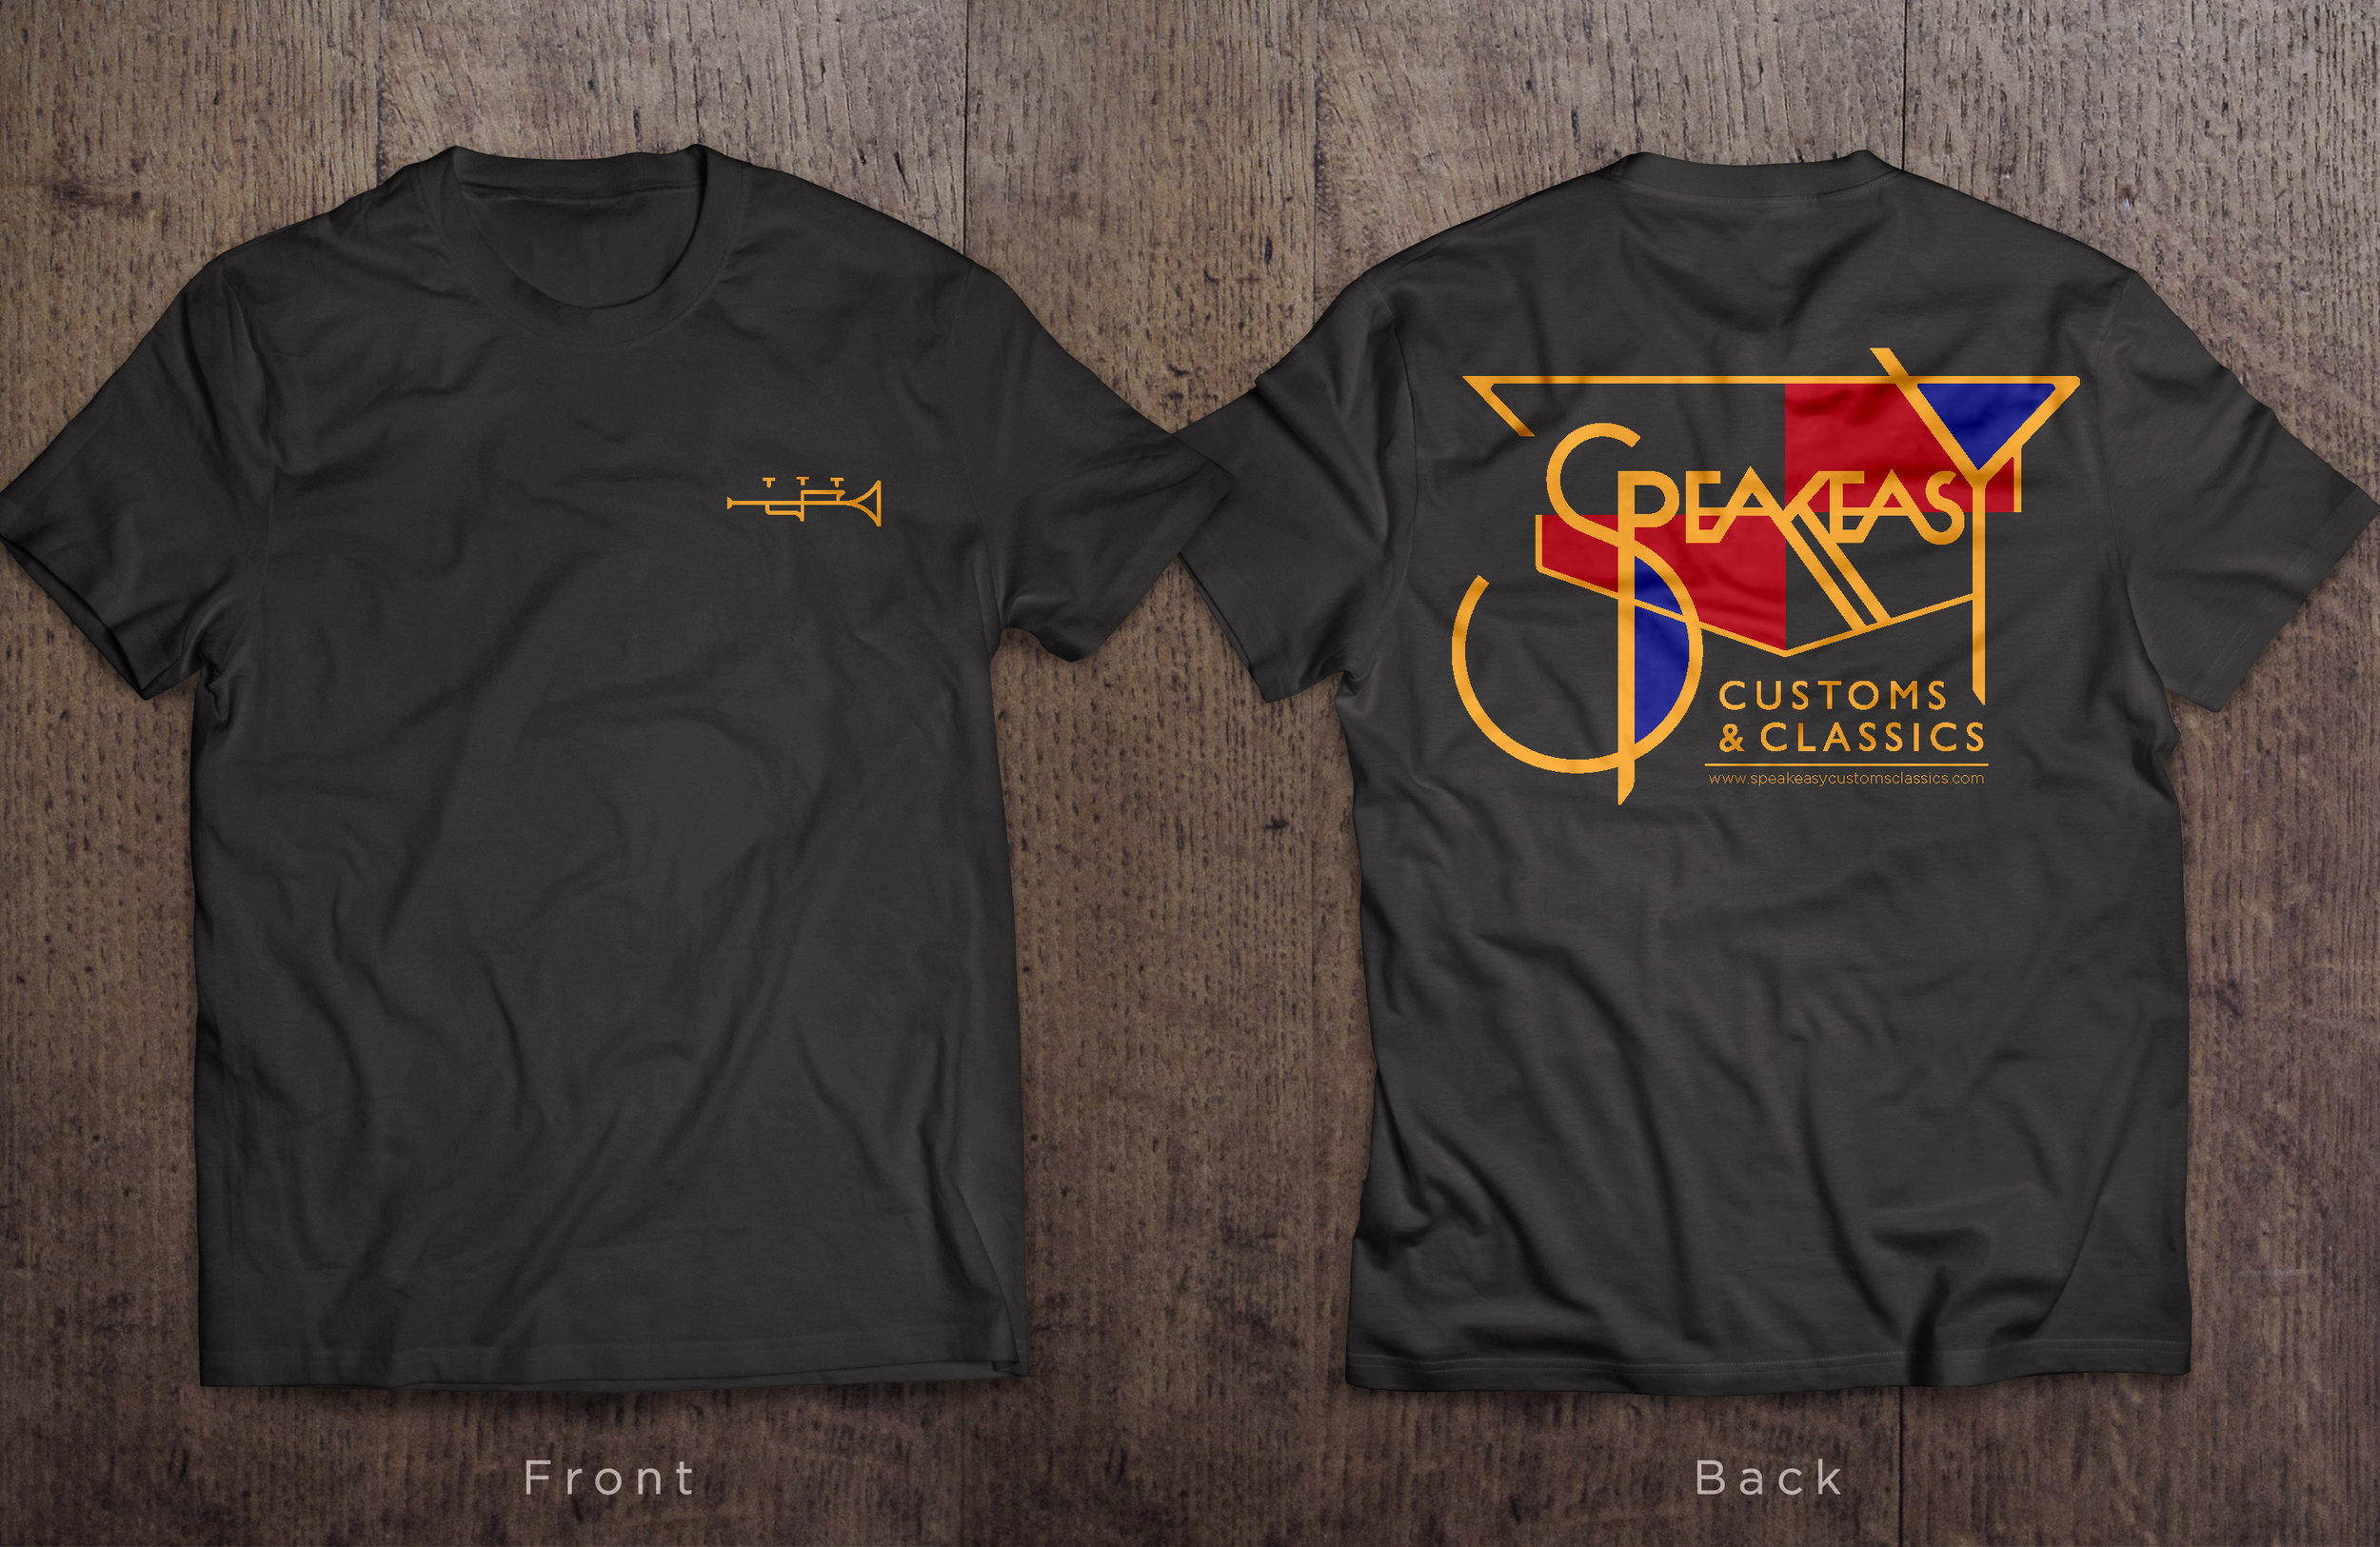 Here's one of the gifts, a speakeasy T-Shirt!